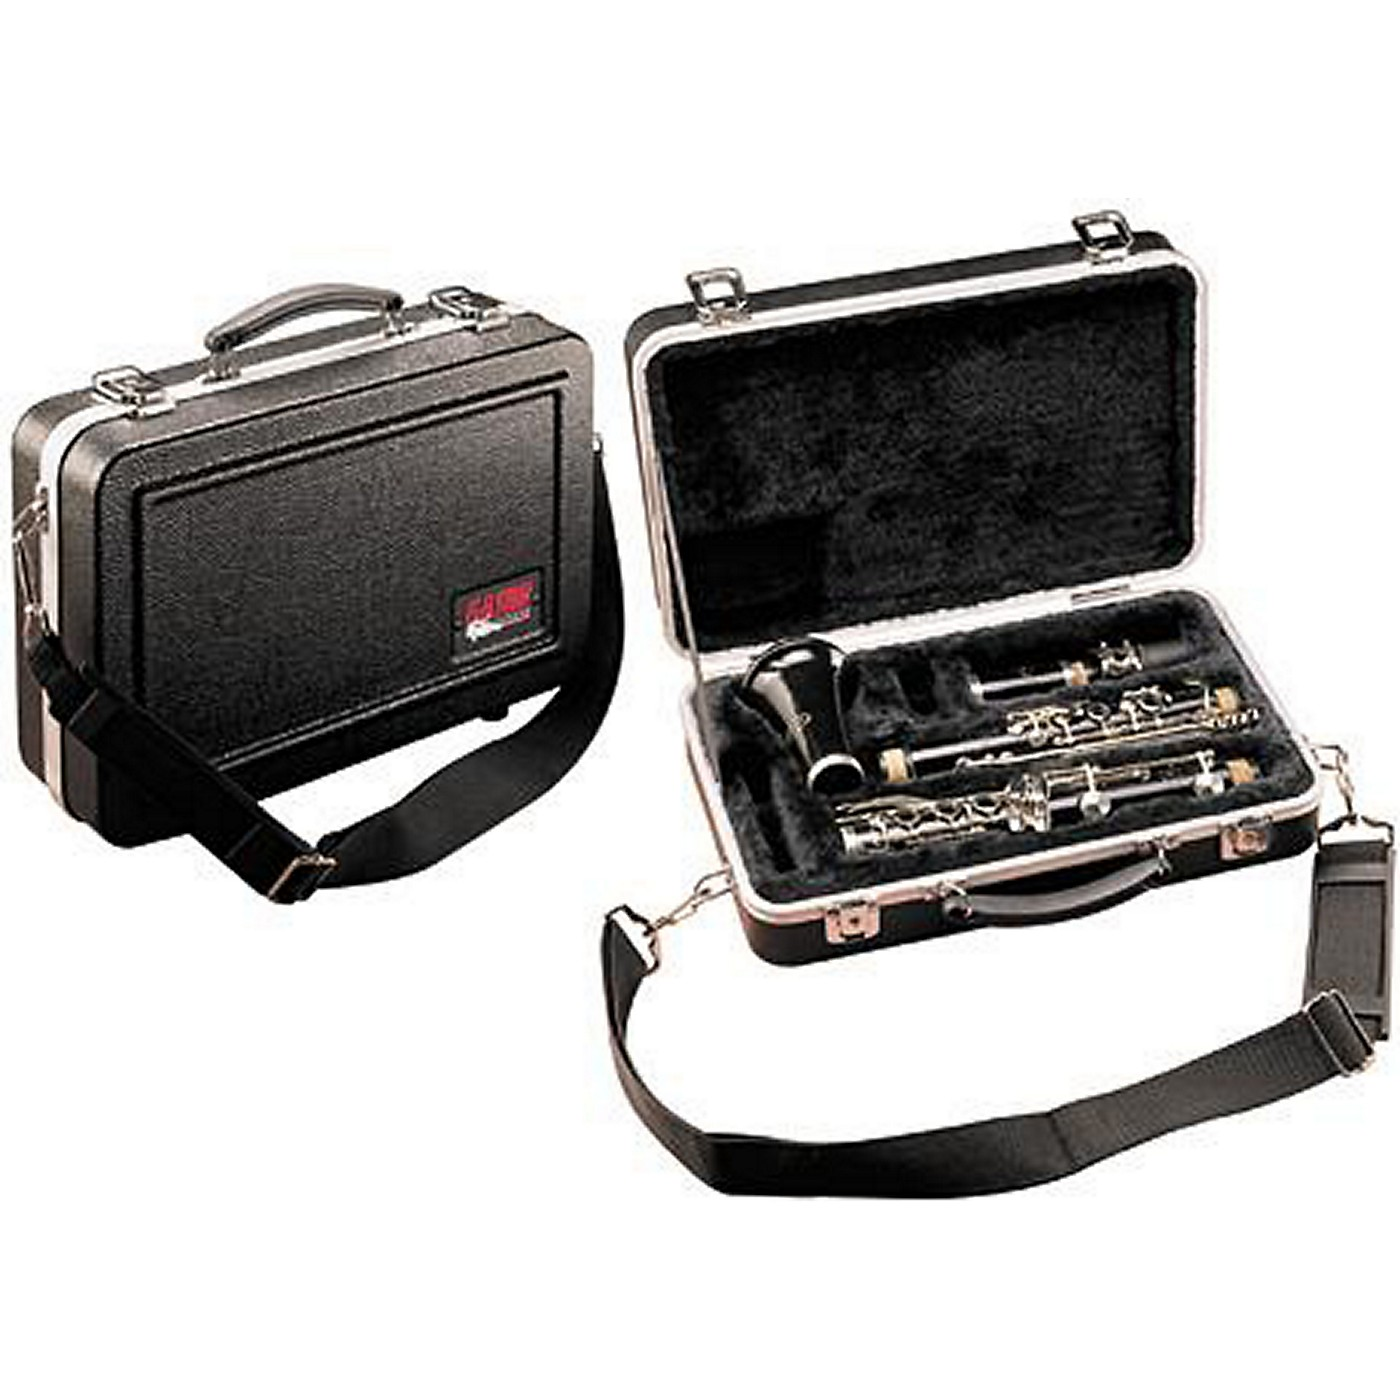 Gator GC Series Deluxe ABS Clarinet Case thumbnail